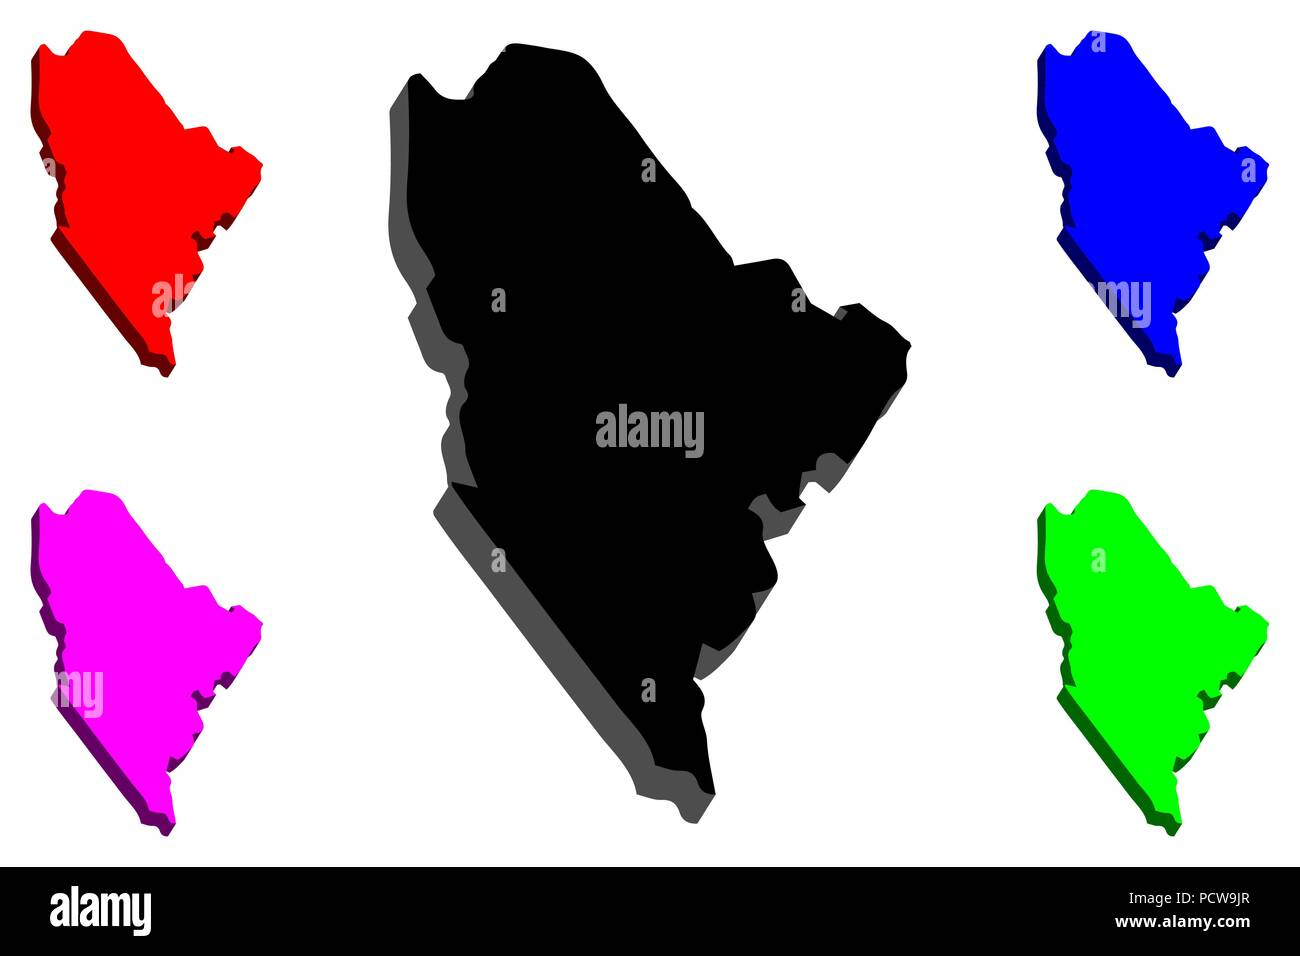 3d Map Of Maine United States Of America Black Red Purple